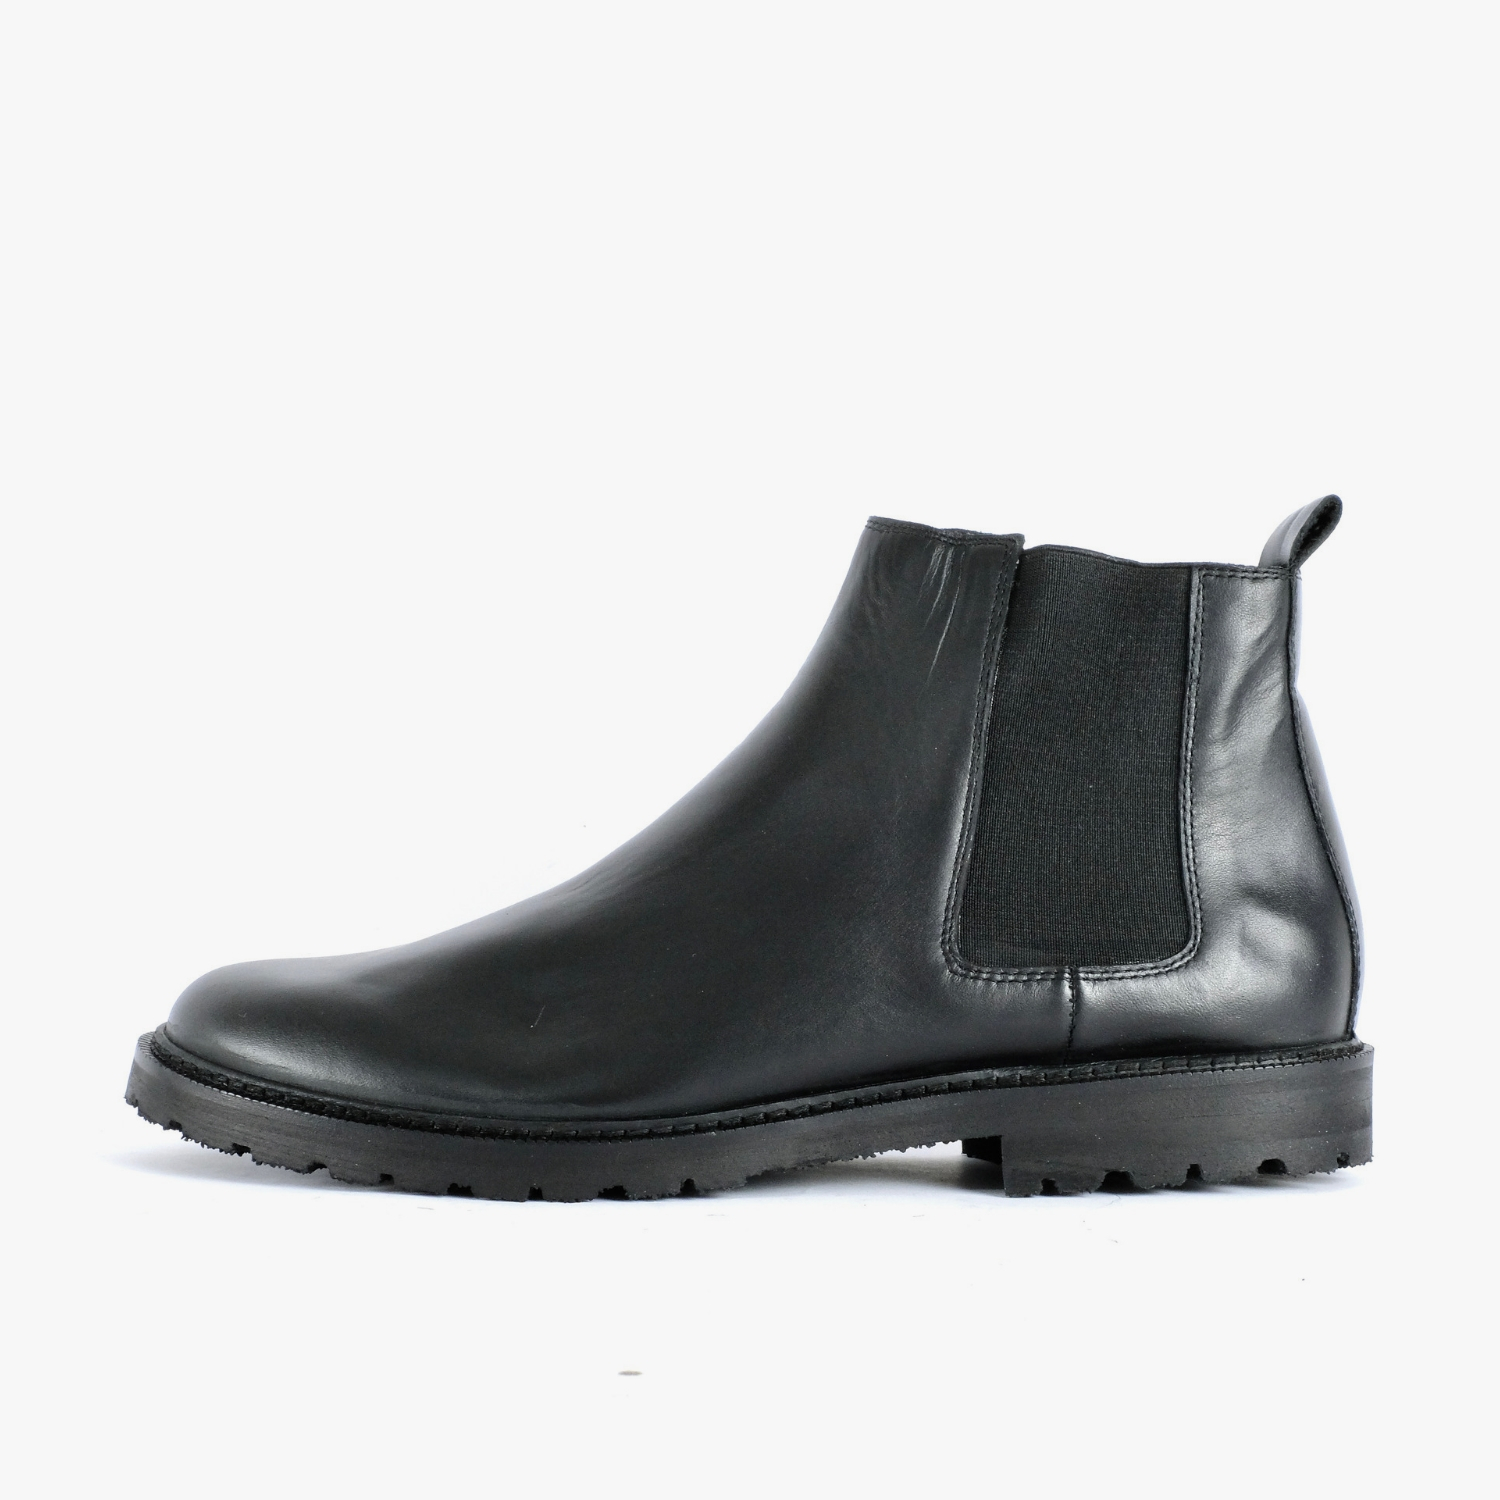 Black Leather Chelsea Boots Ethically Made In Europe